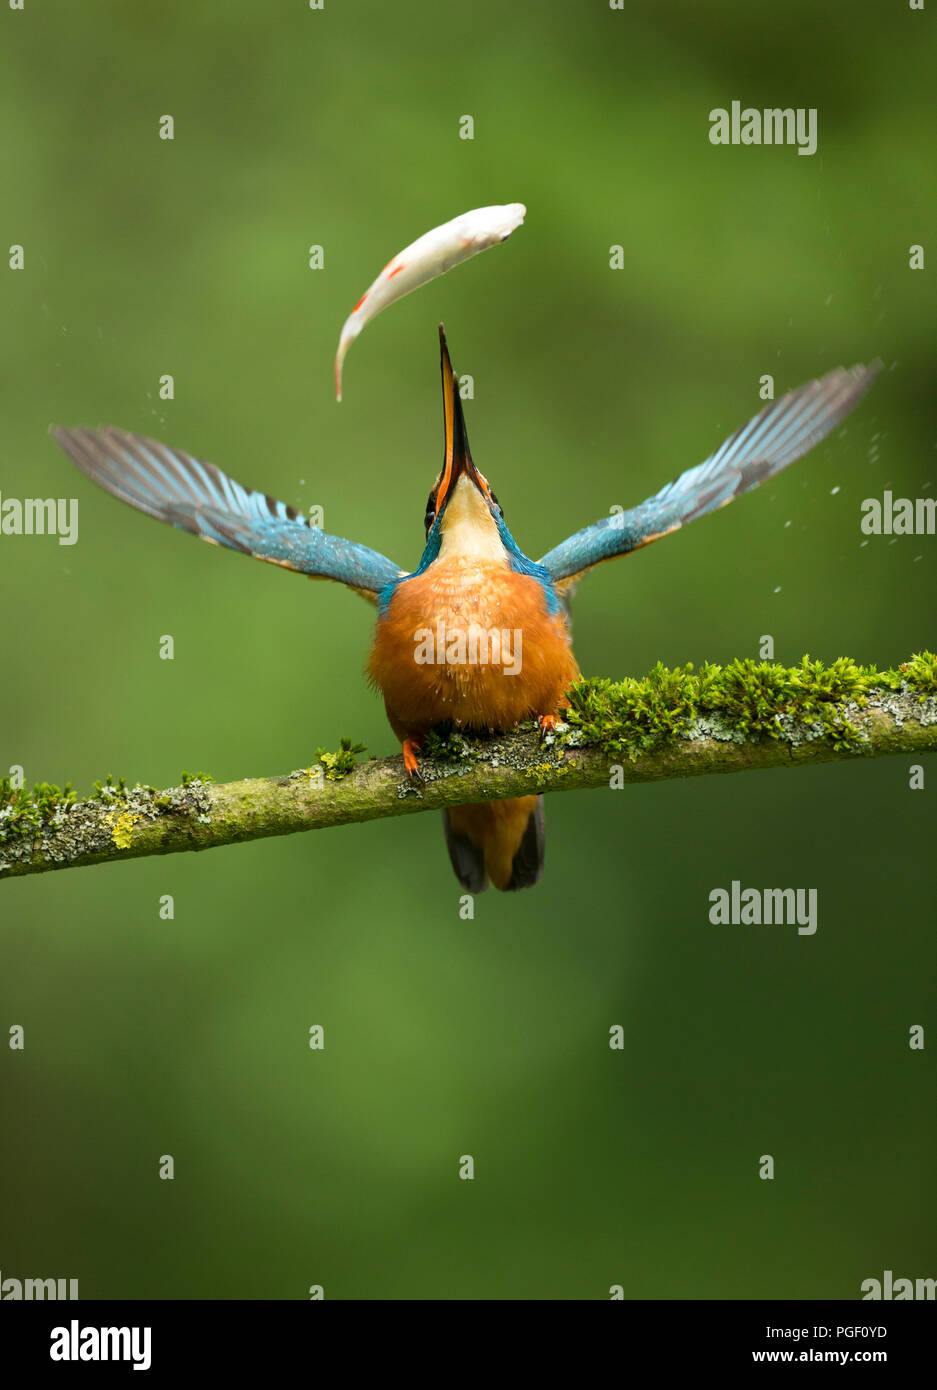 Kingfisher (Alcedo atthis) catching fish - Stock Image